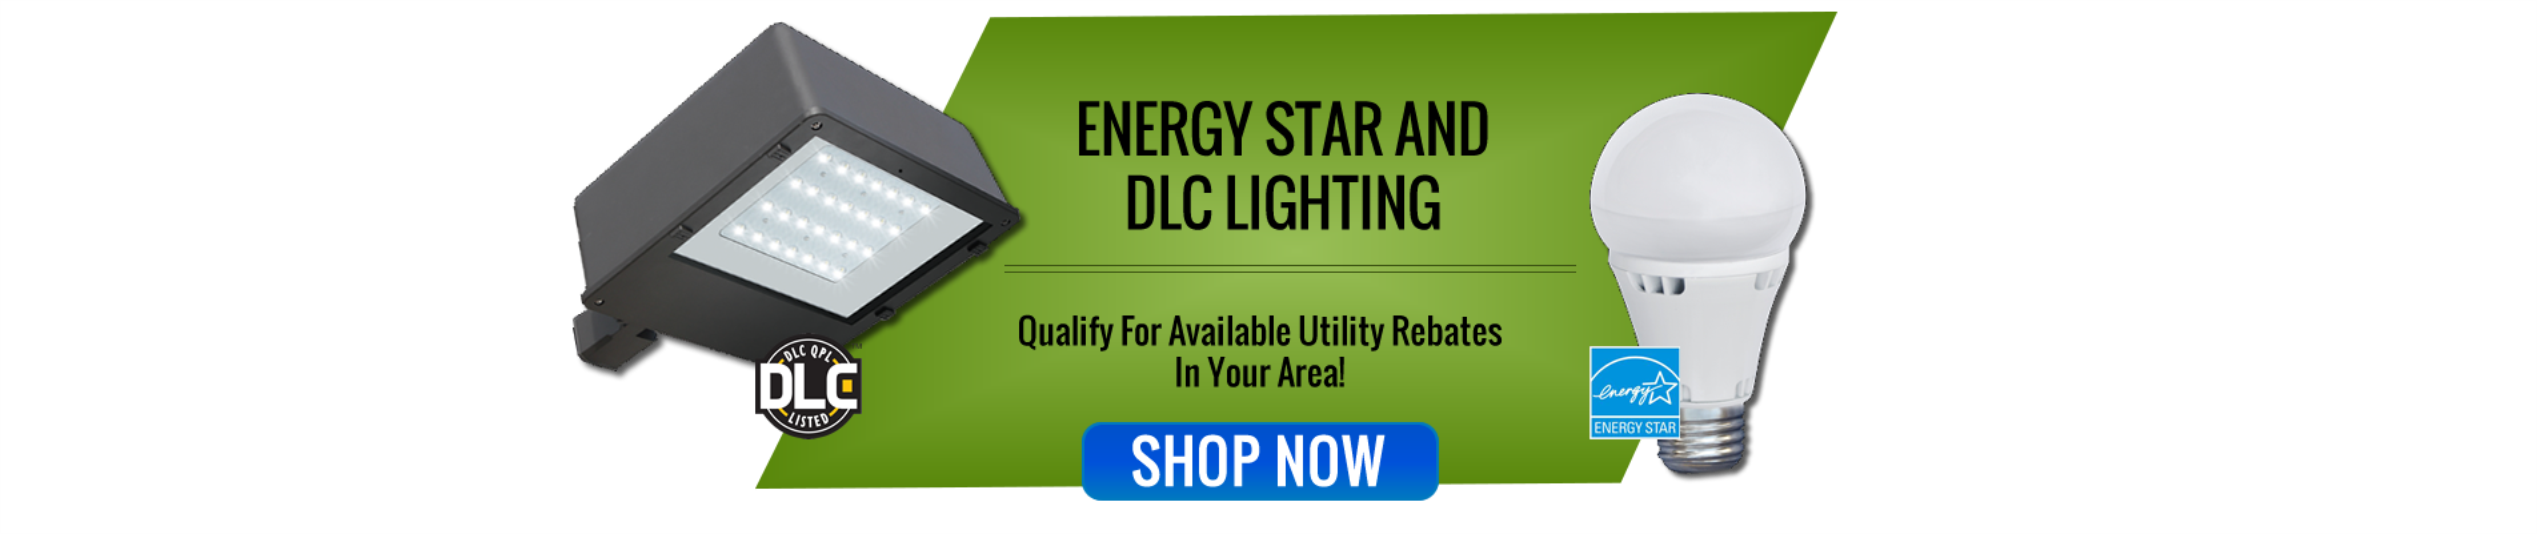 Energy_Star_DLC_Lighting_HDR